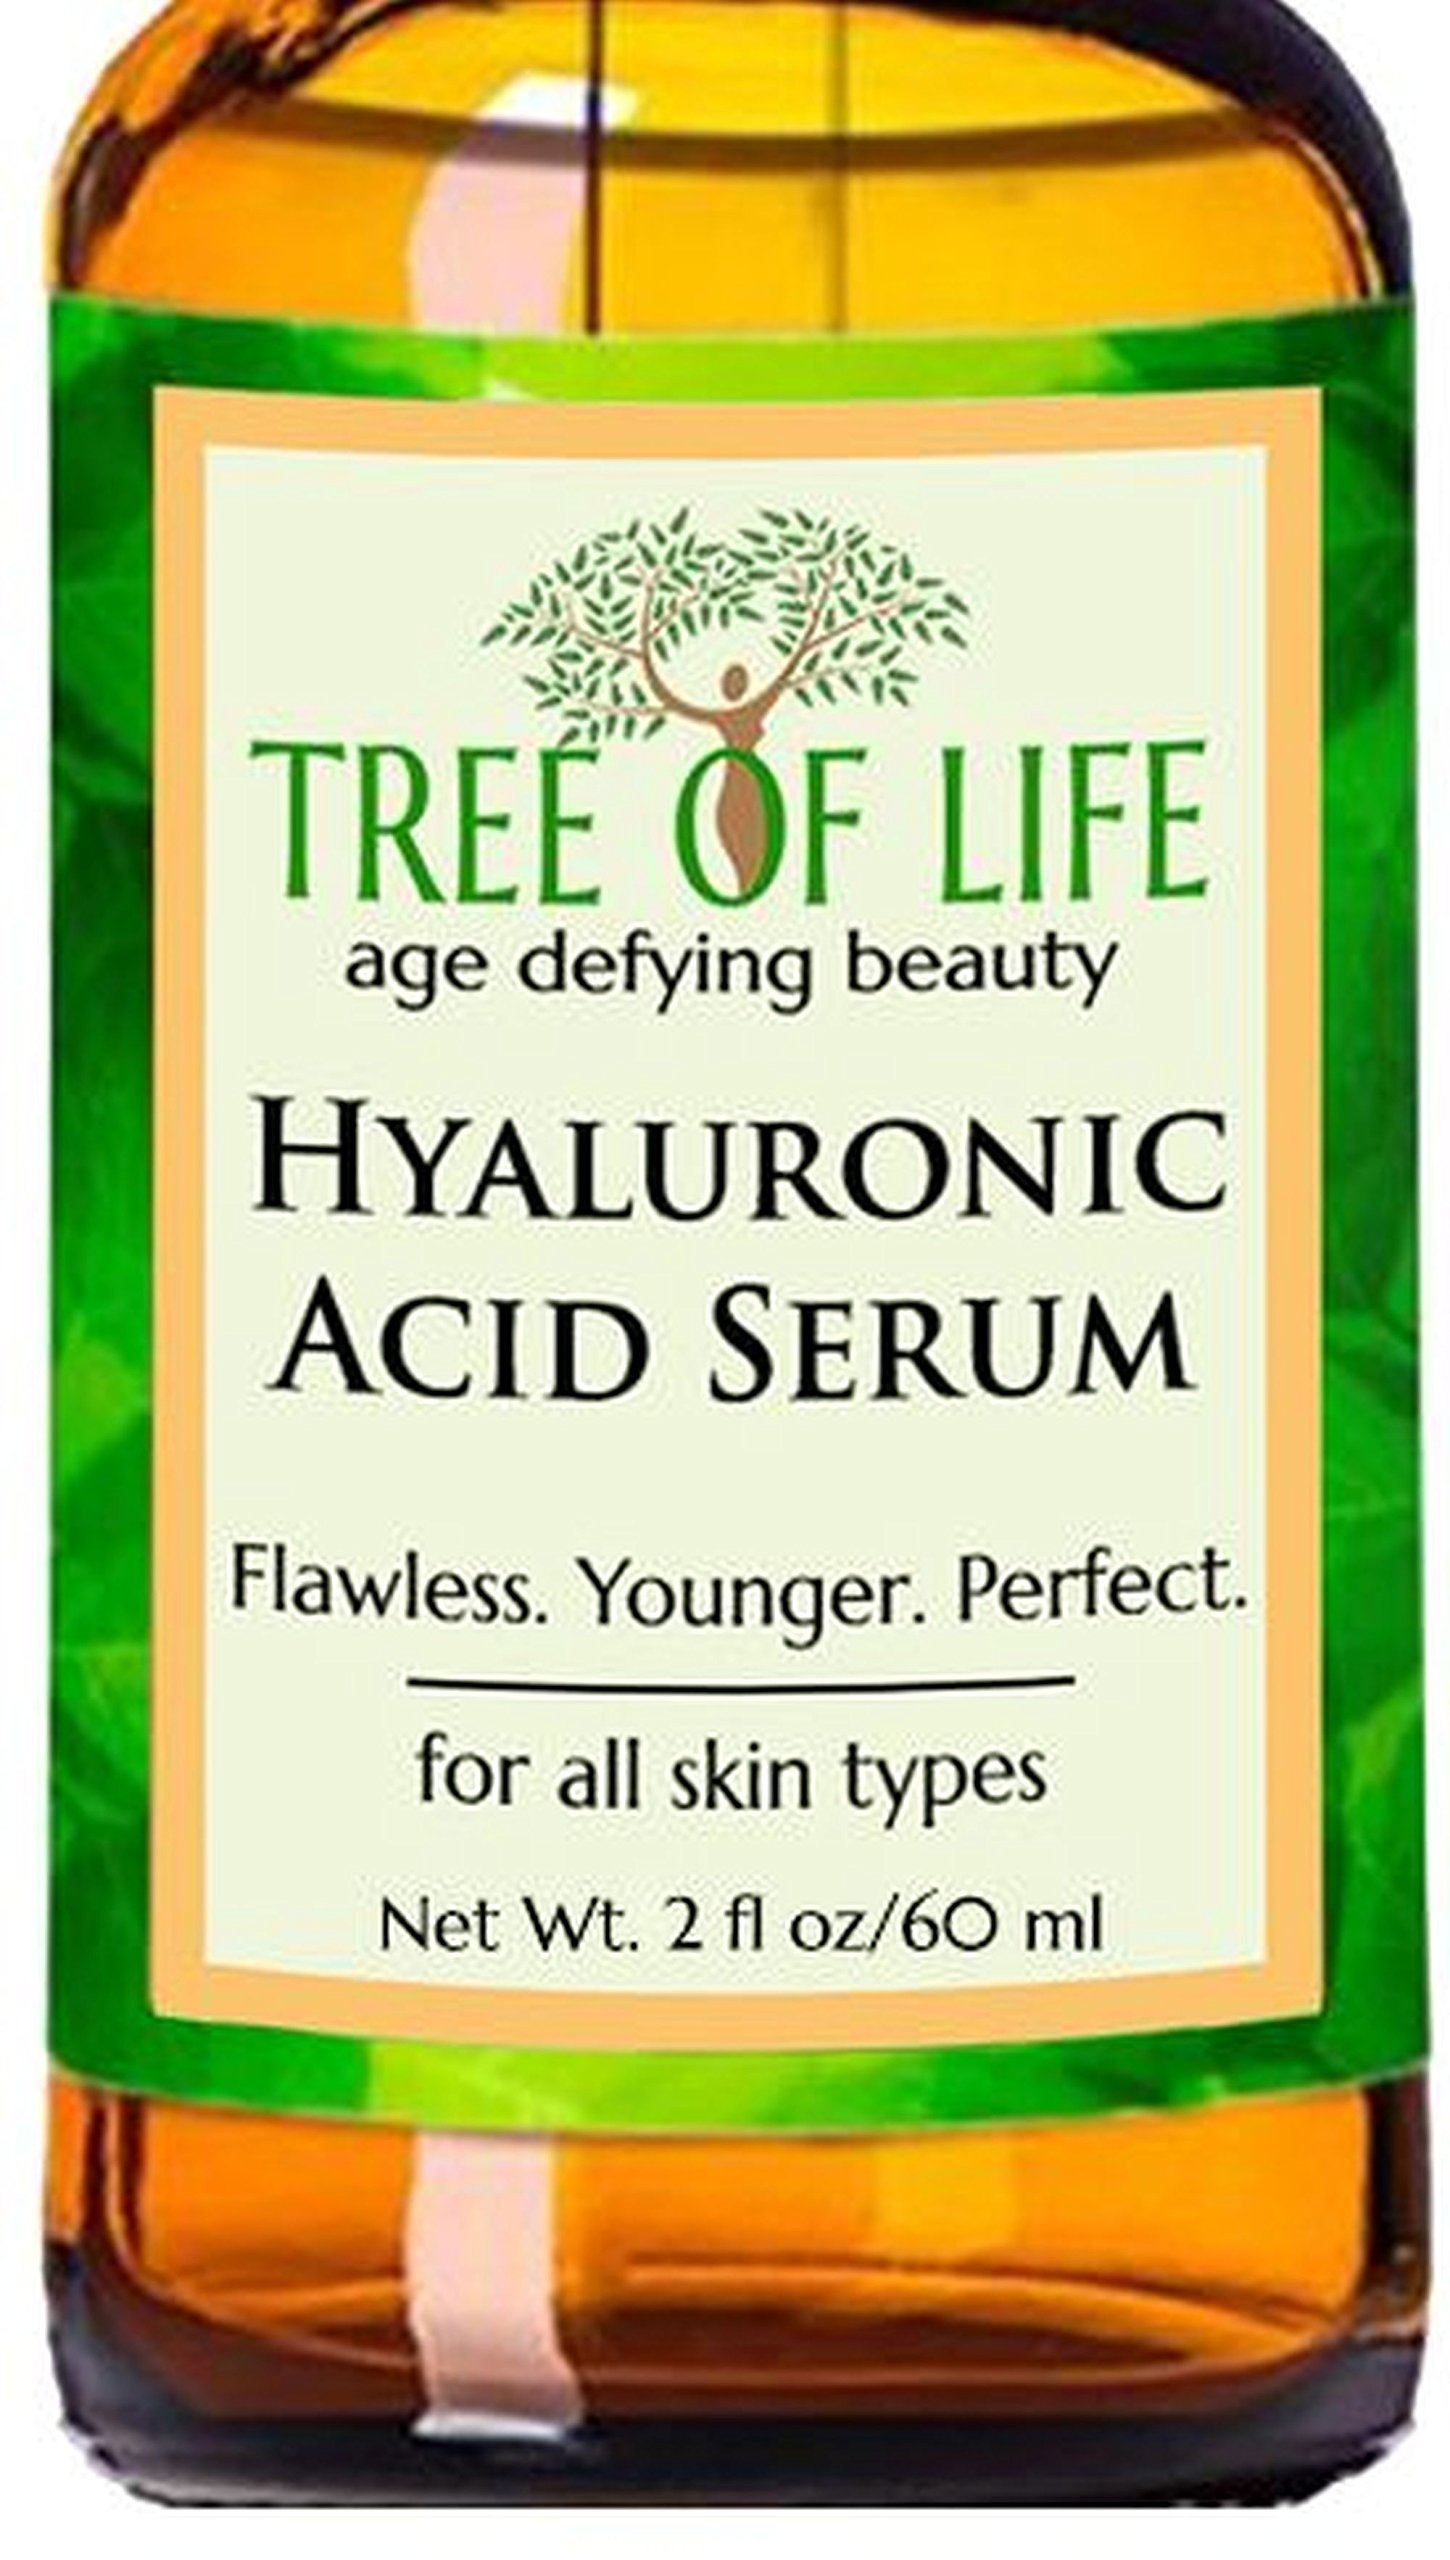 Hyaluronic Acid Serum for Skin - 2oz DOUBLE SIZE by Flawless. Younger. Perfect.